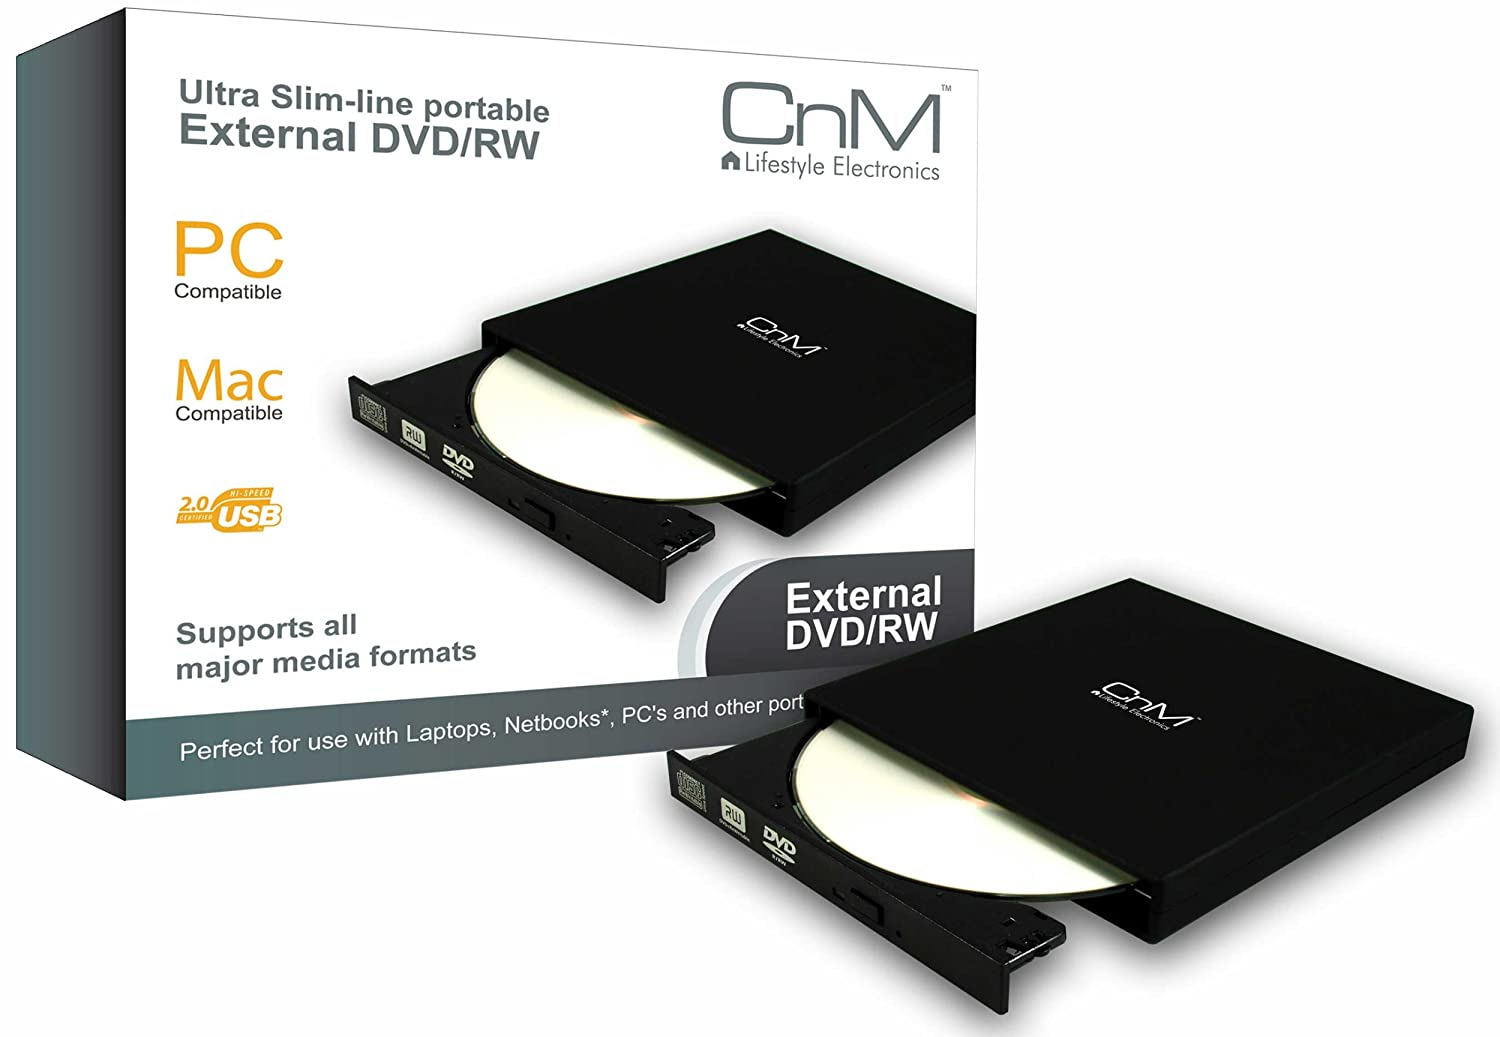 CNM EXTERNAL DVD RW WINDOWS 7 64BIT DRIVER